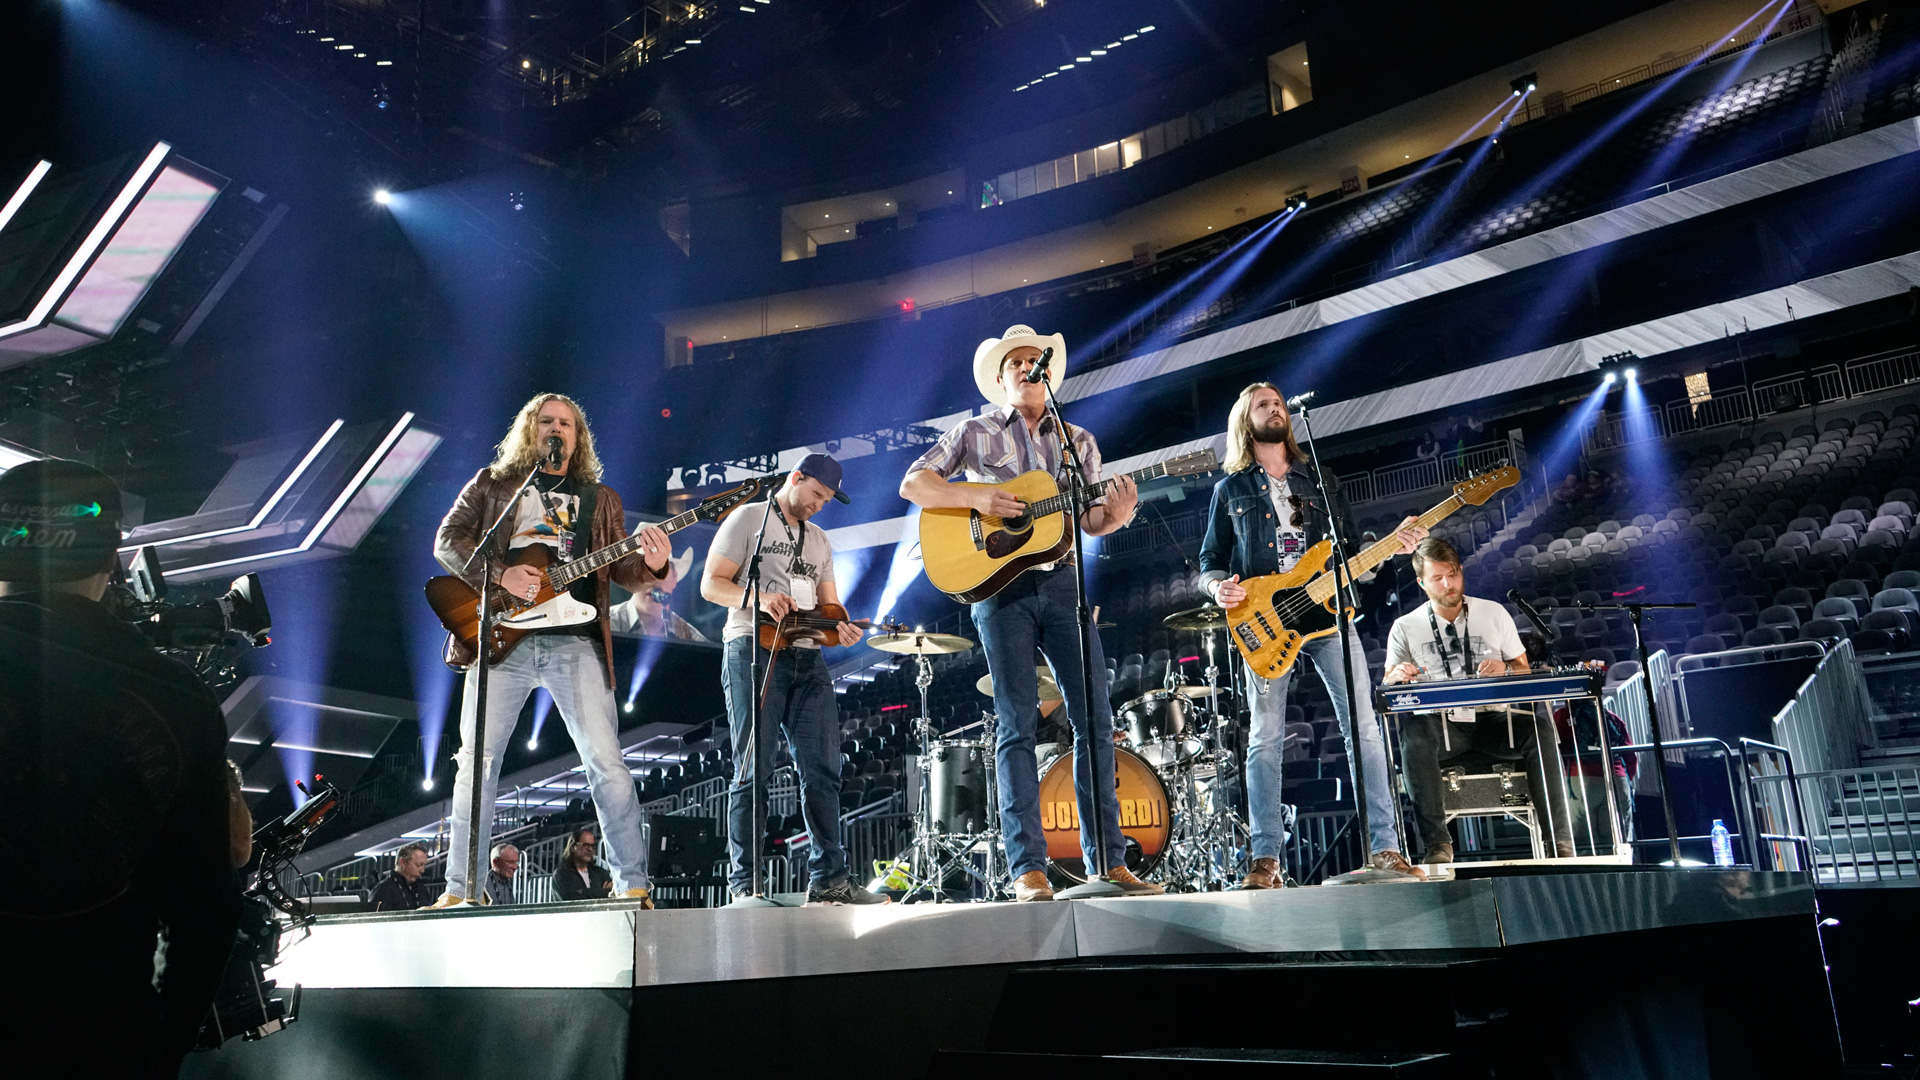 Jon Pardi is bound to turn the ACMs into one big party with his performance.